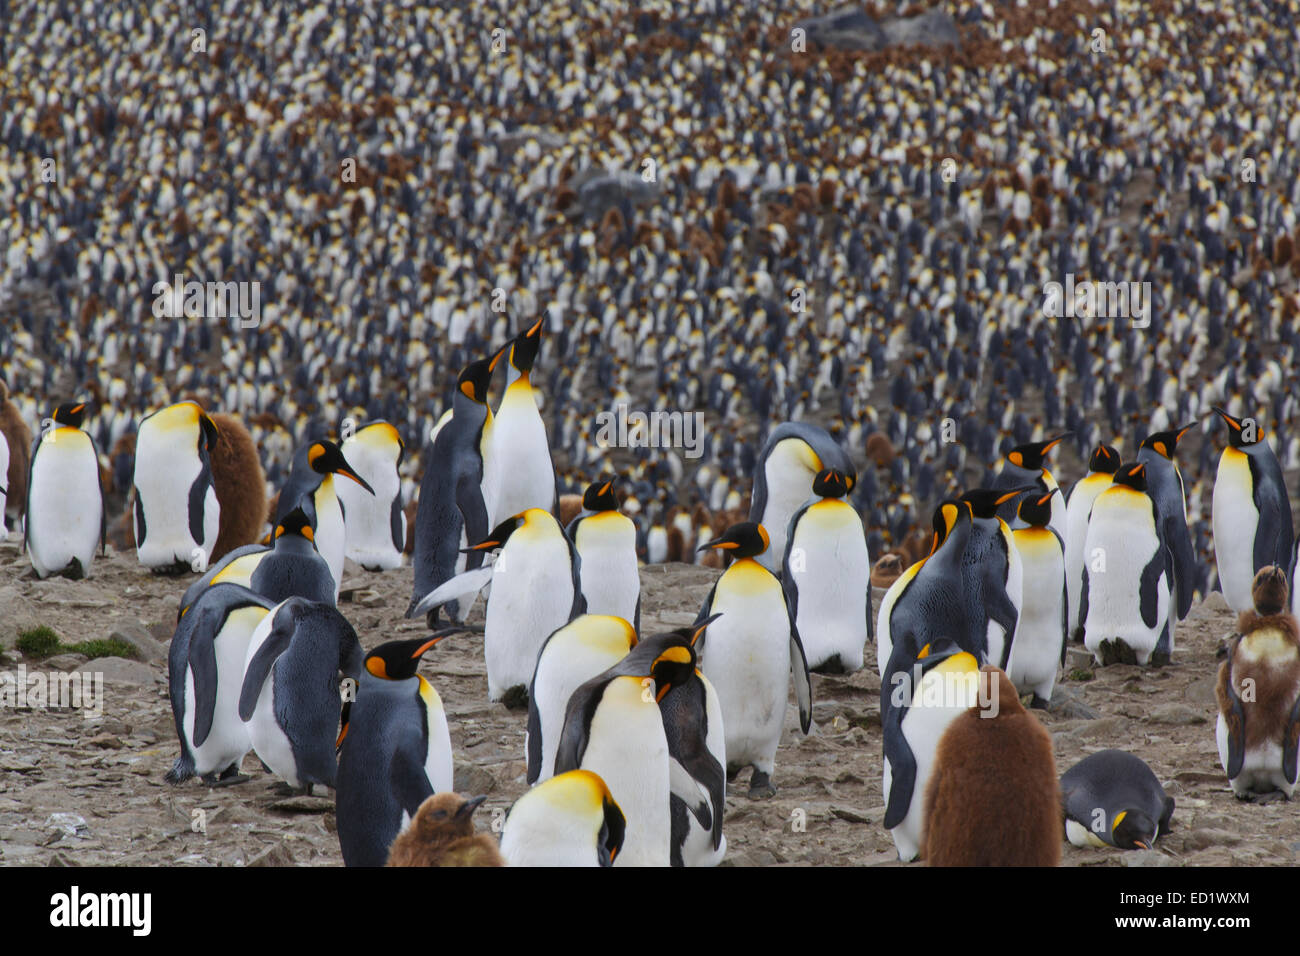 King penguins (Aptenodytes patagonicus), Saint Andrews Bay, South Georgia, Antarctica. - Stock Image